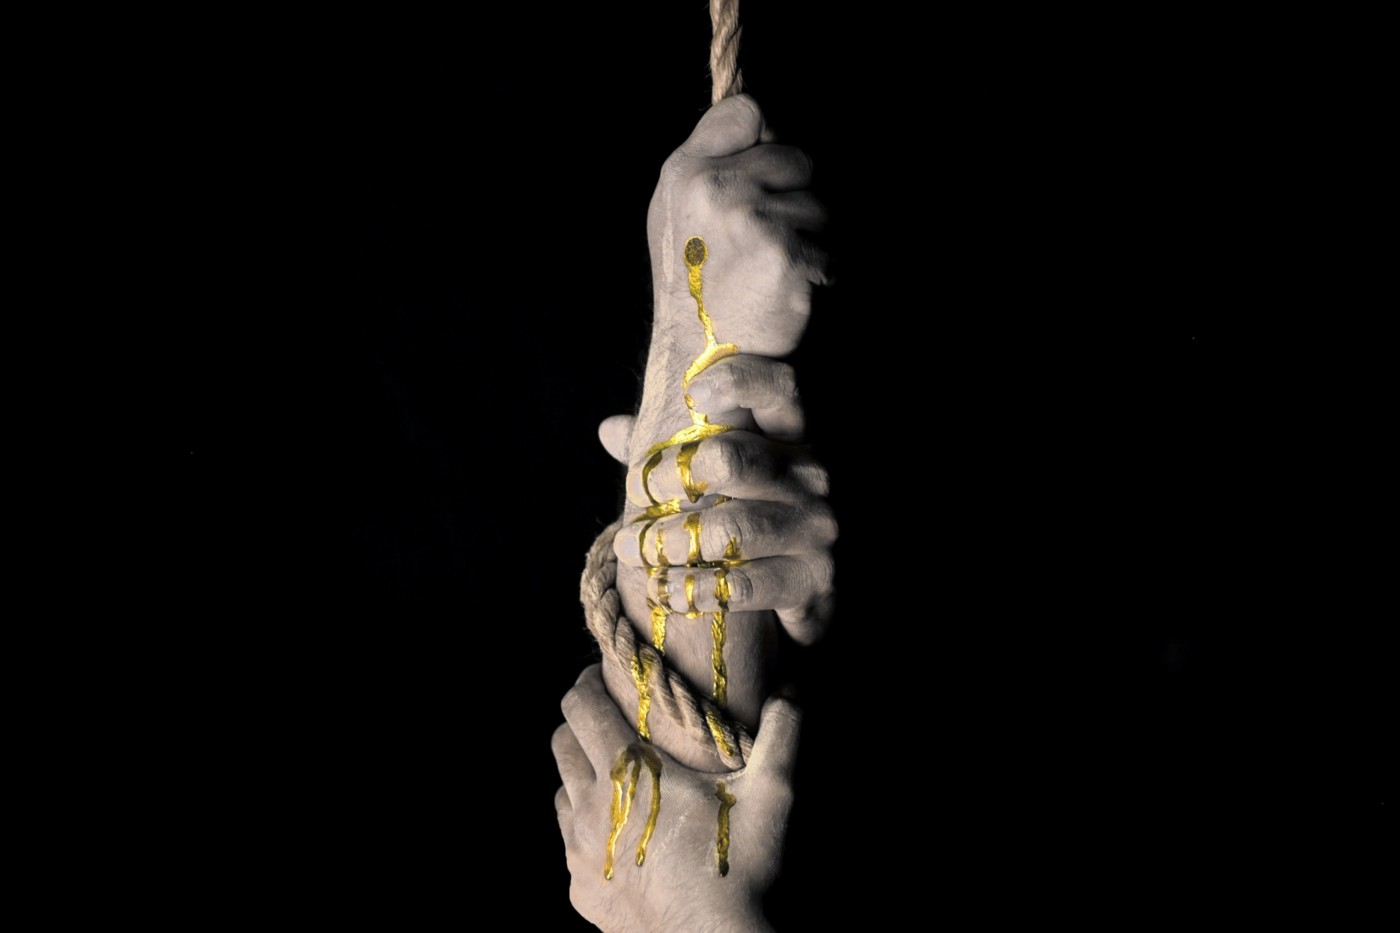 Three hands vertically grip a rope, one on top of the other against a black background. The top hand has a wound which bleeds